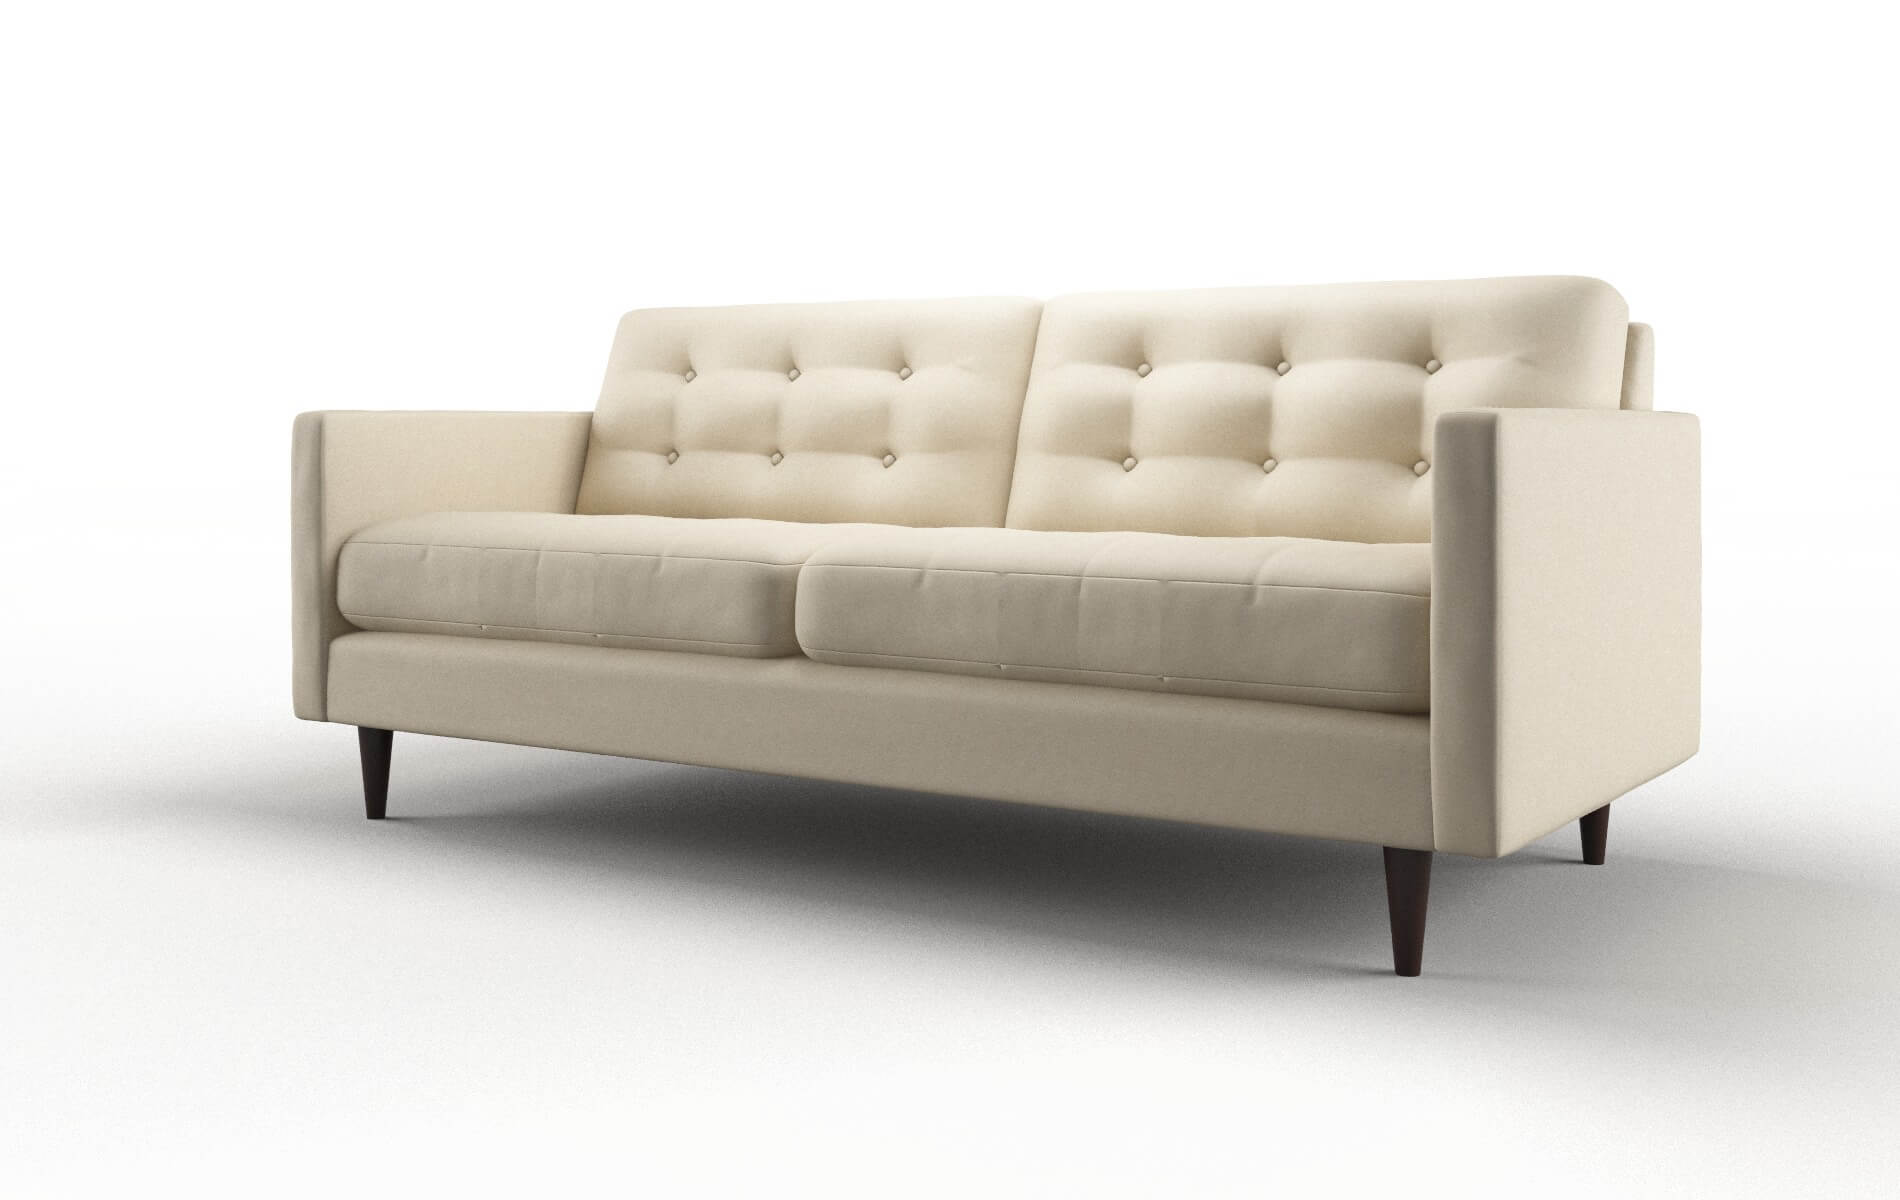 Oslo Ecksofa Oslo Noble Buckwheat Sofa